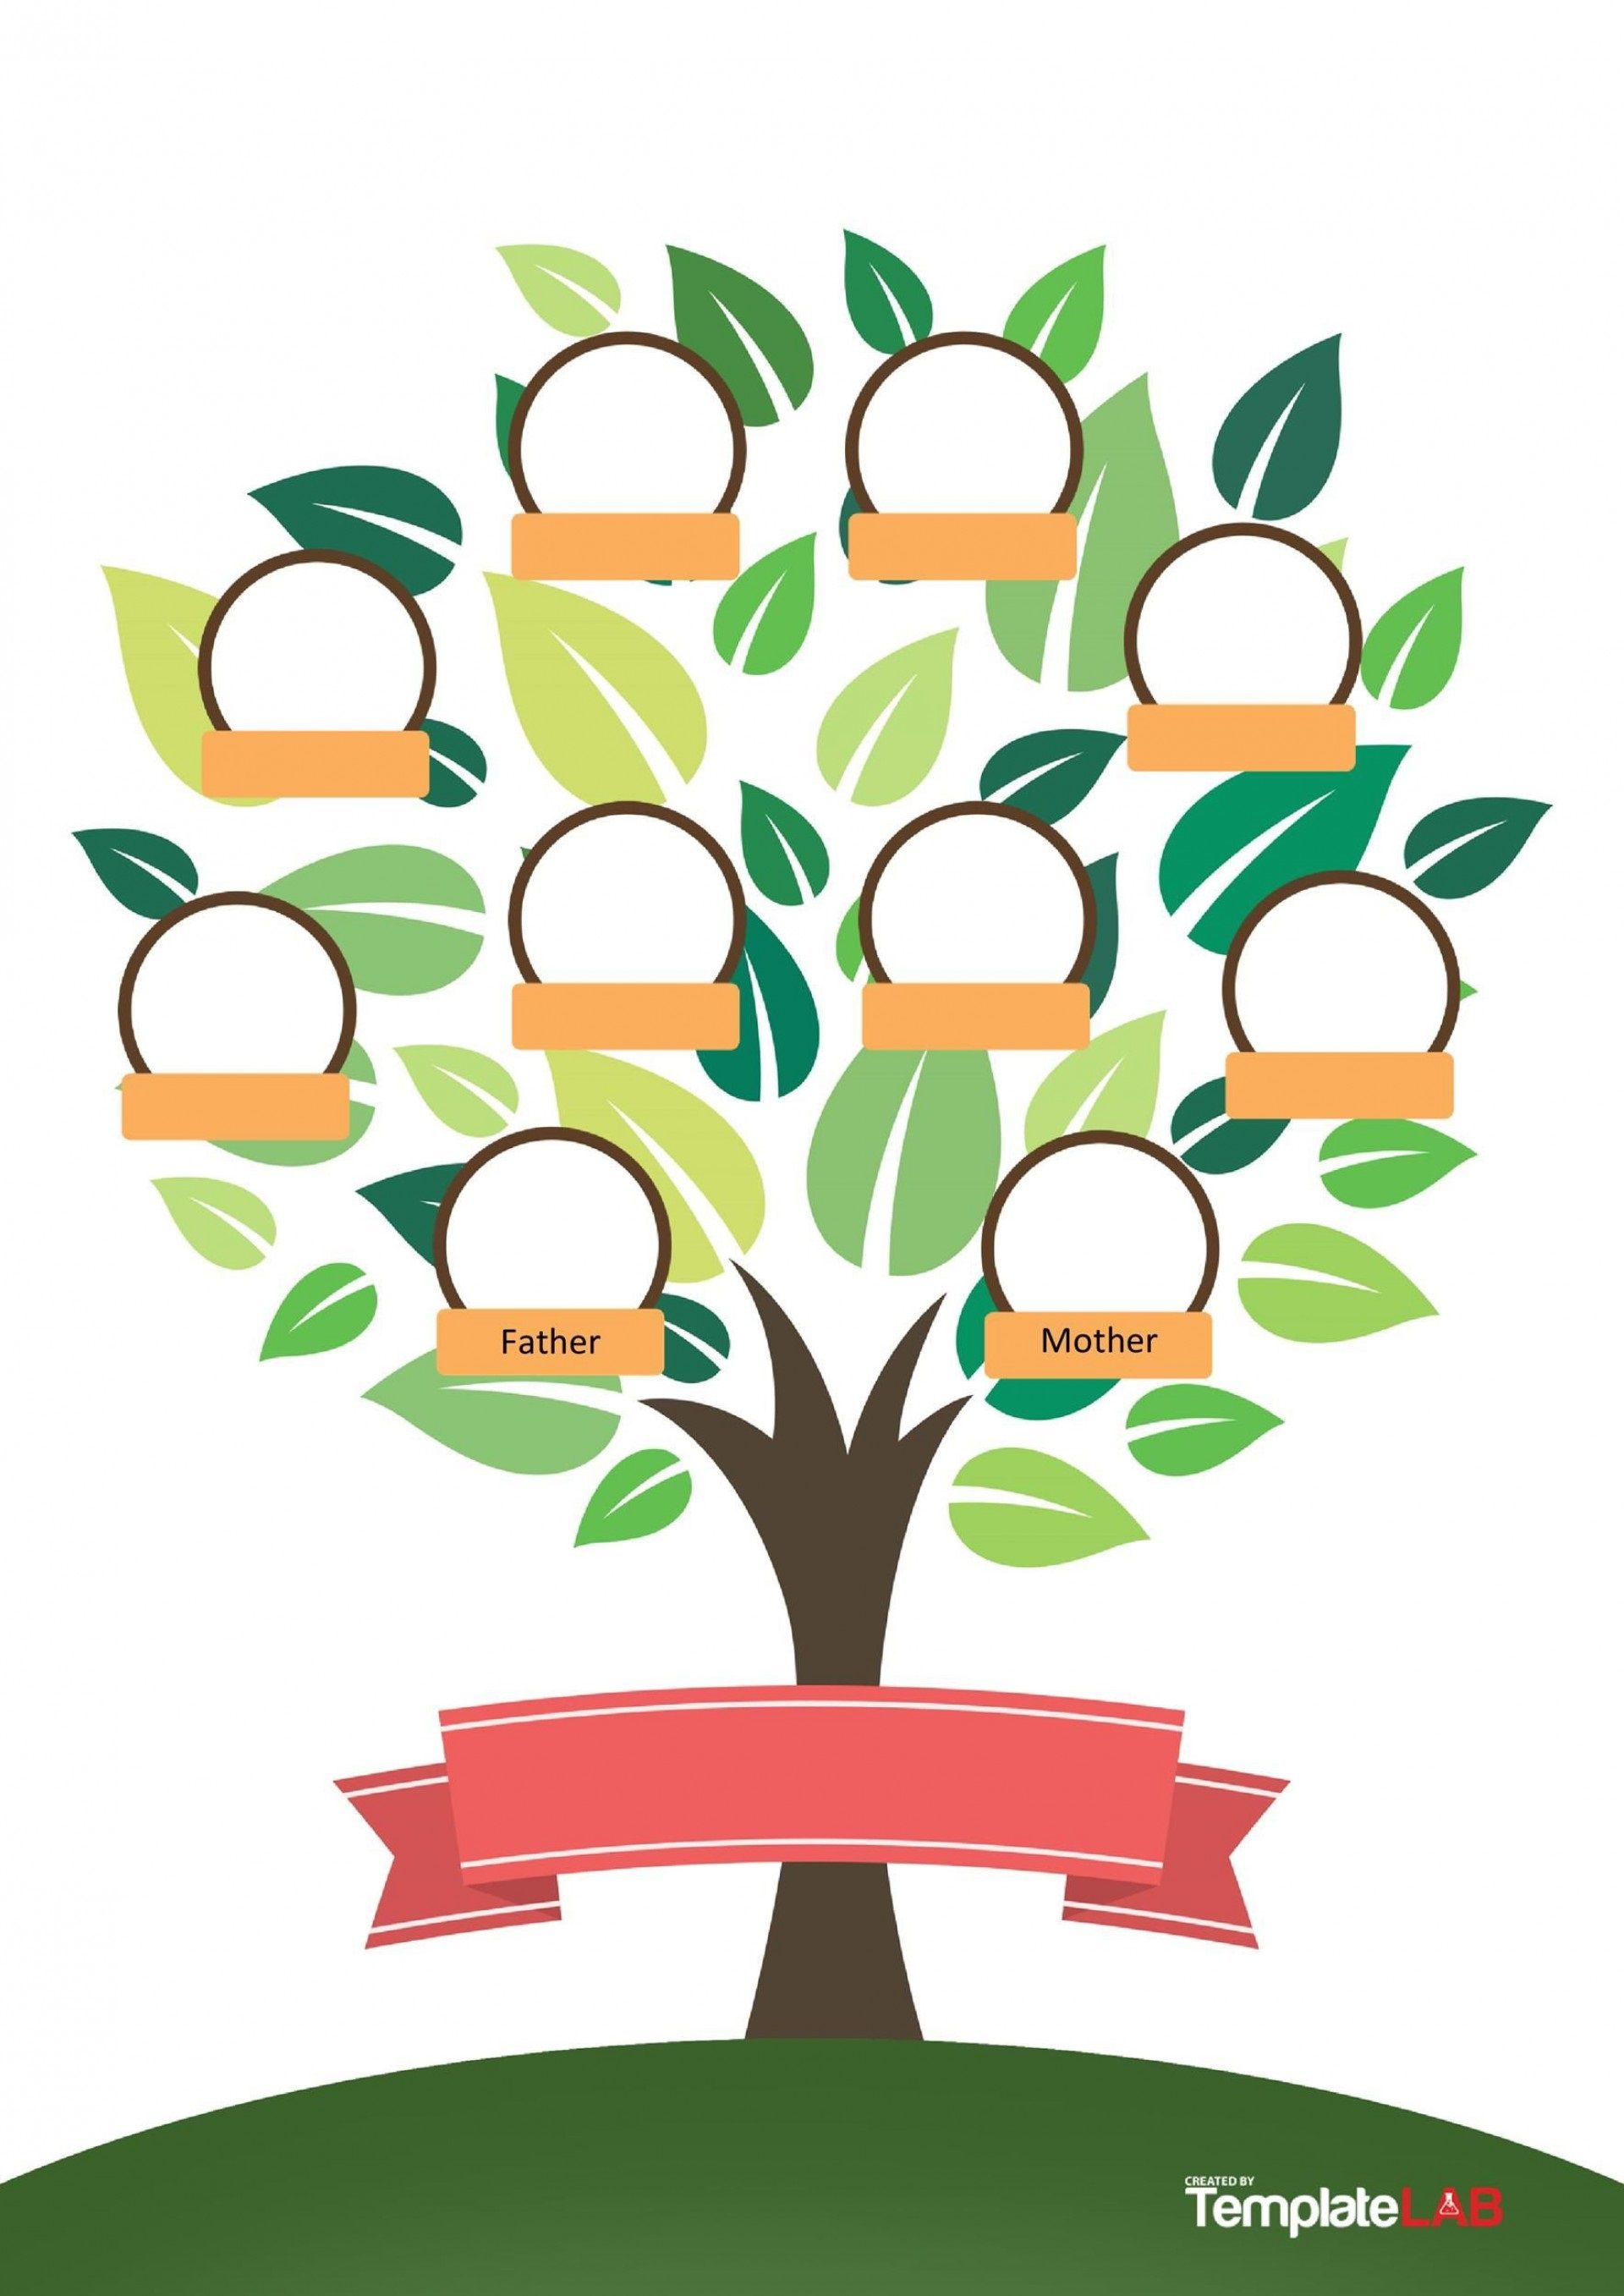 003 Unforgettable Free Editable Family Tree Template For Mac Picture Full